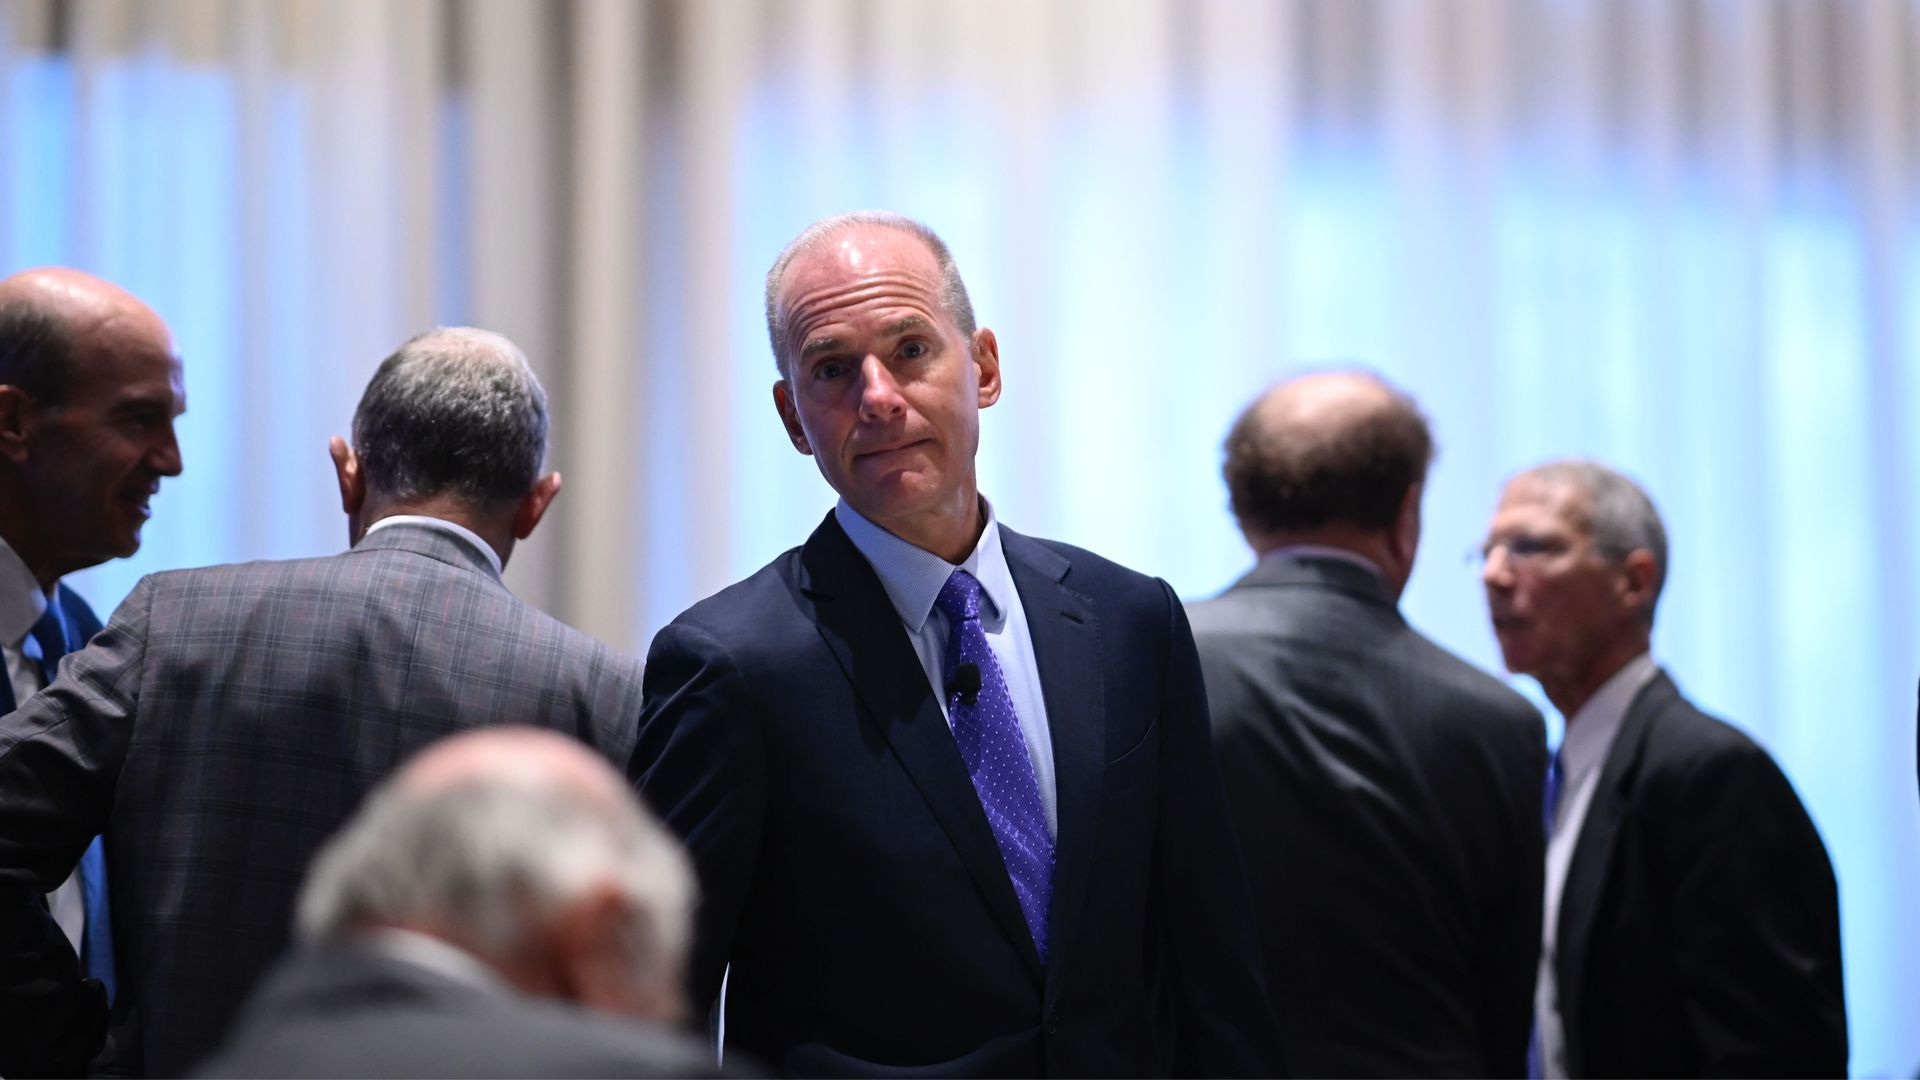 In this image, Muilenburg stands in the midst of a crowd that is facing the opposite direction. He is facing the camera.